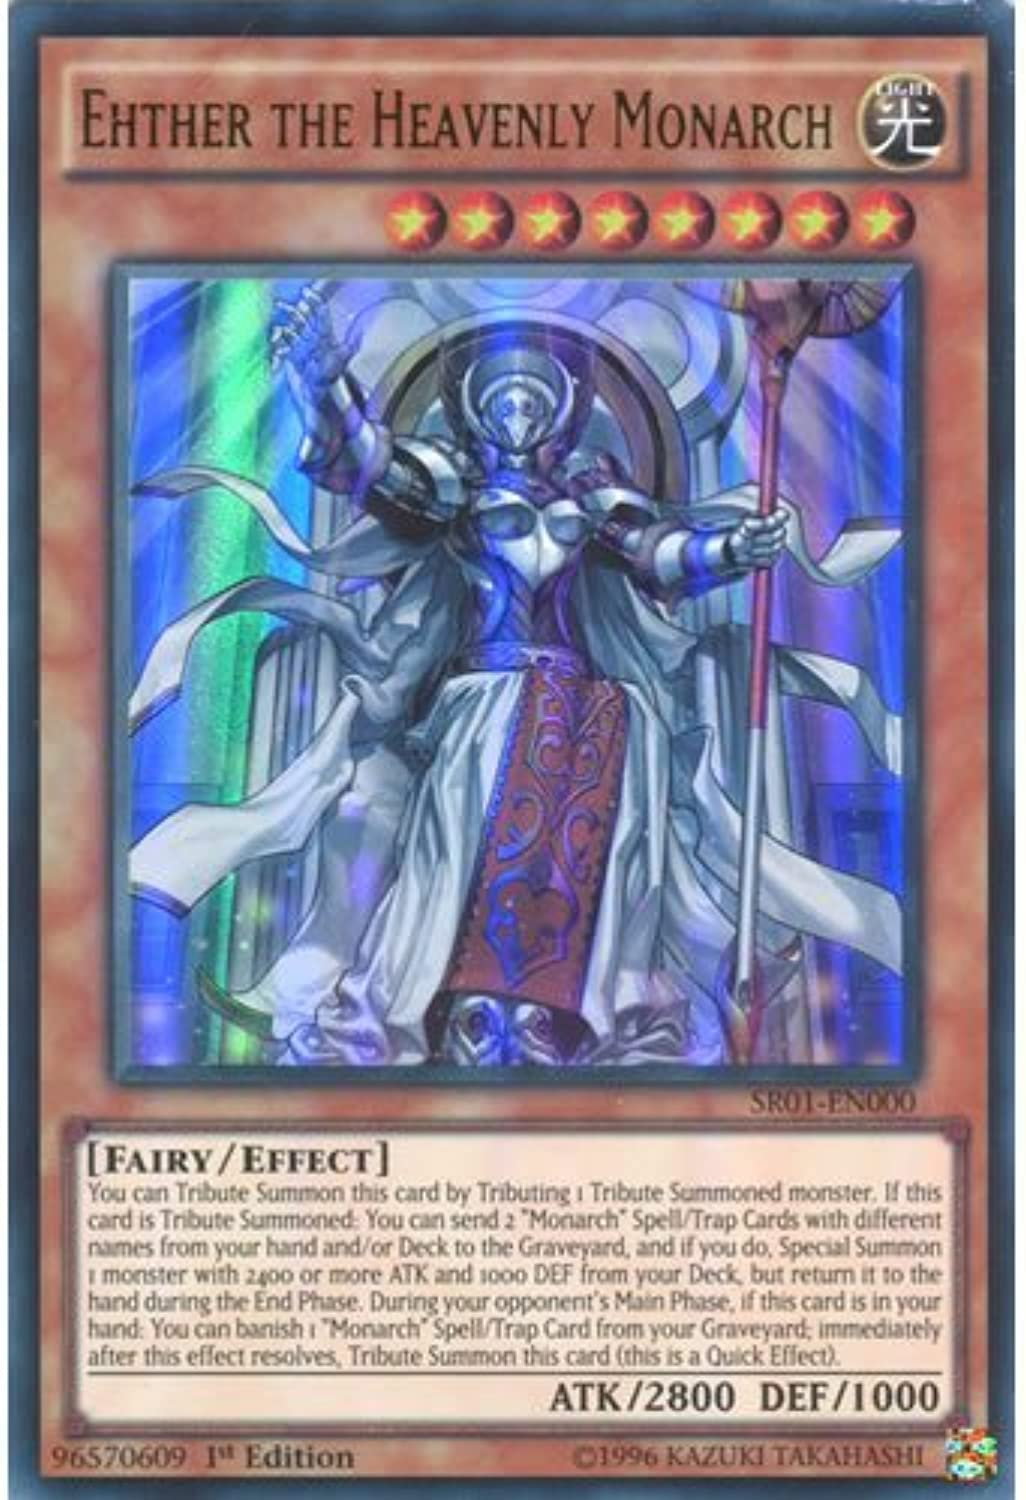 YuGiOh   SR01EN000 1st Ed Ehther the Heavenly Monarch Ultra Rare Card  ( Emperor of Darkness ) by Deckboosters